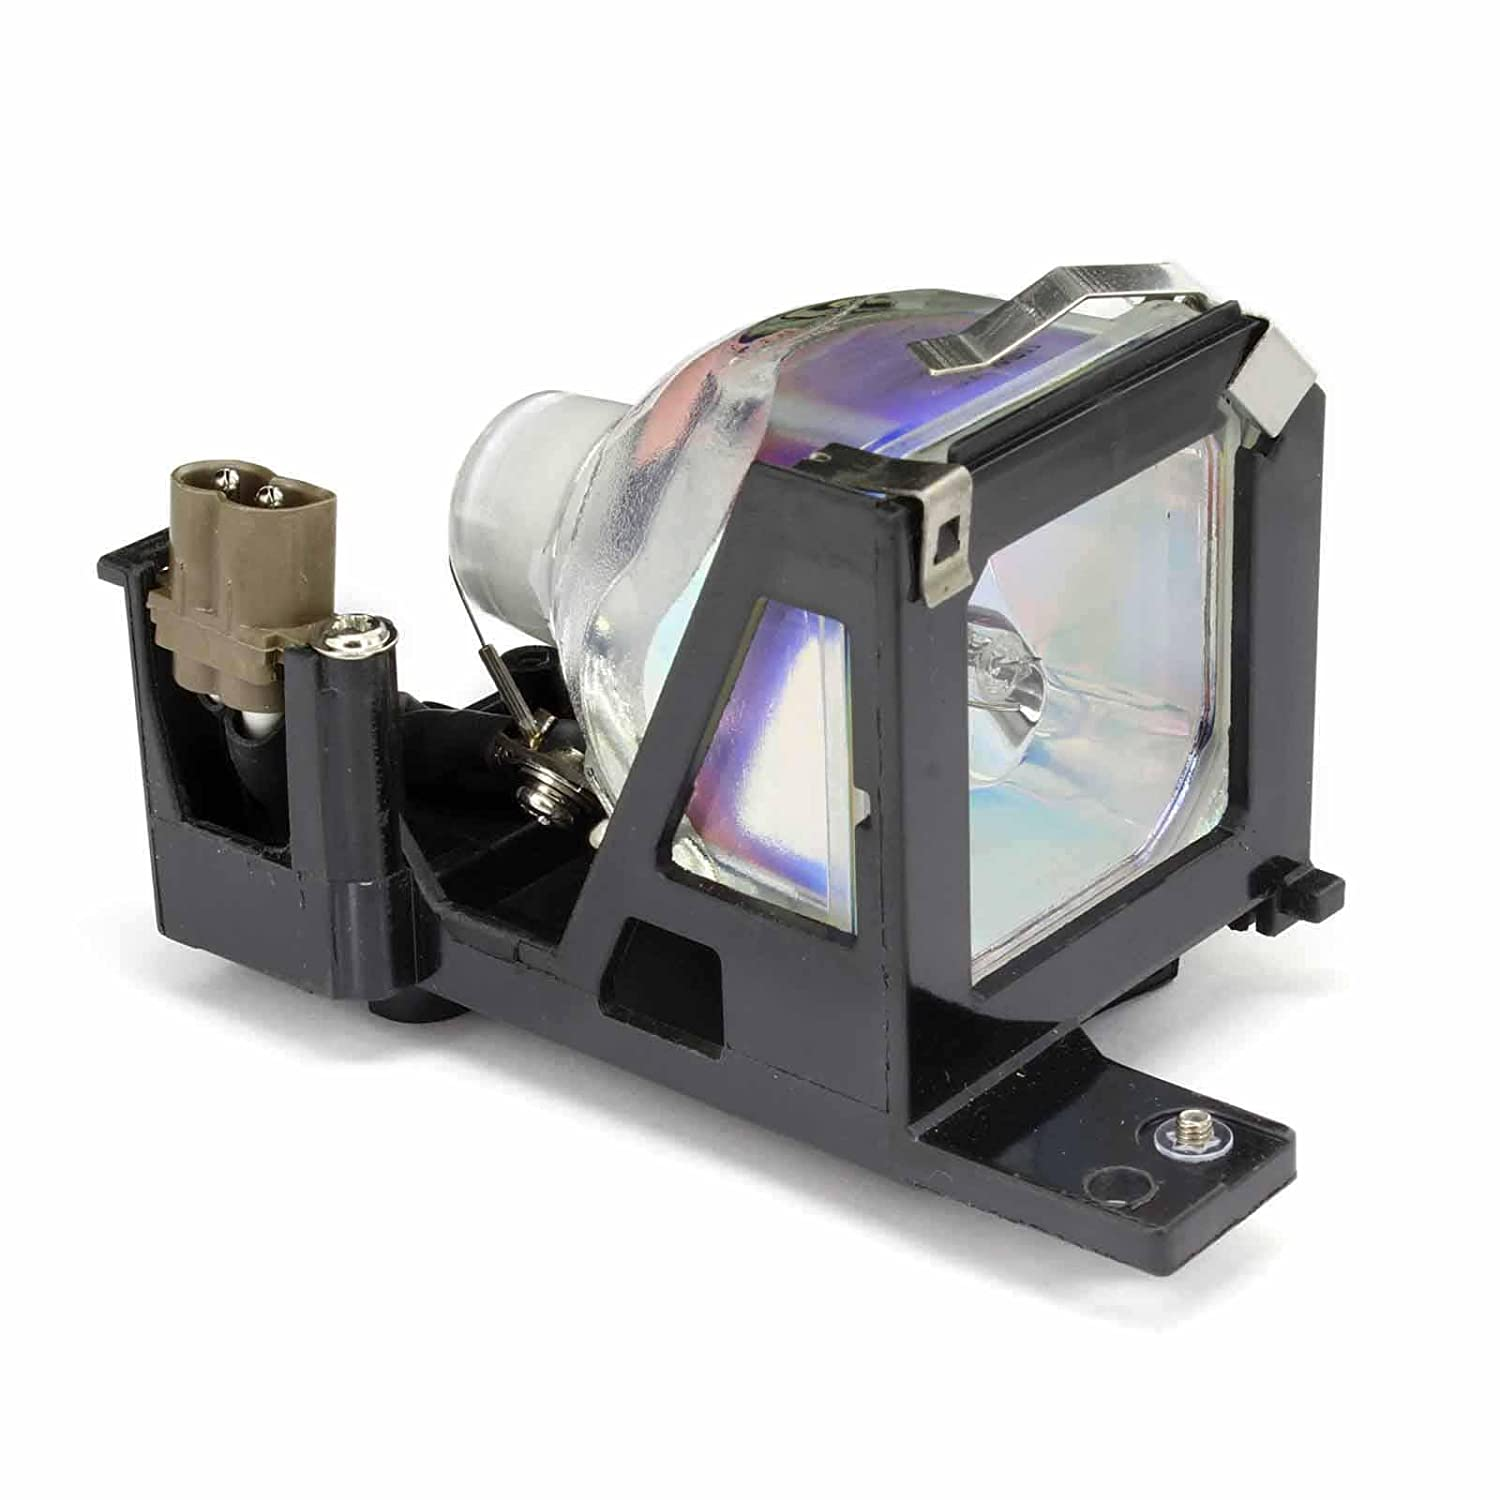 Projector Lamp Compatible for Viewsonic PX747-4K Projector Bulb and Housing RLC-117 121AV